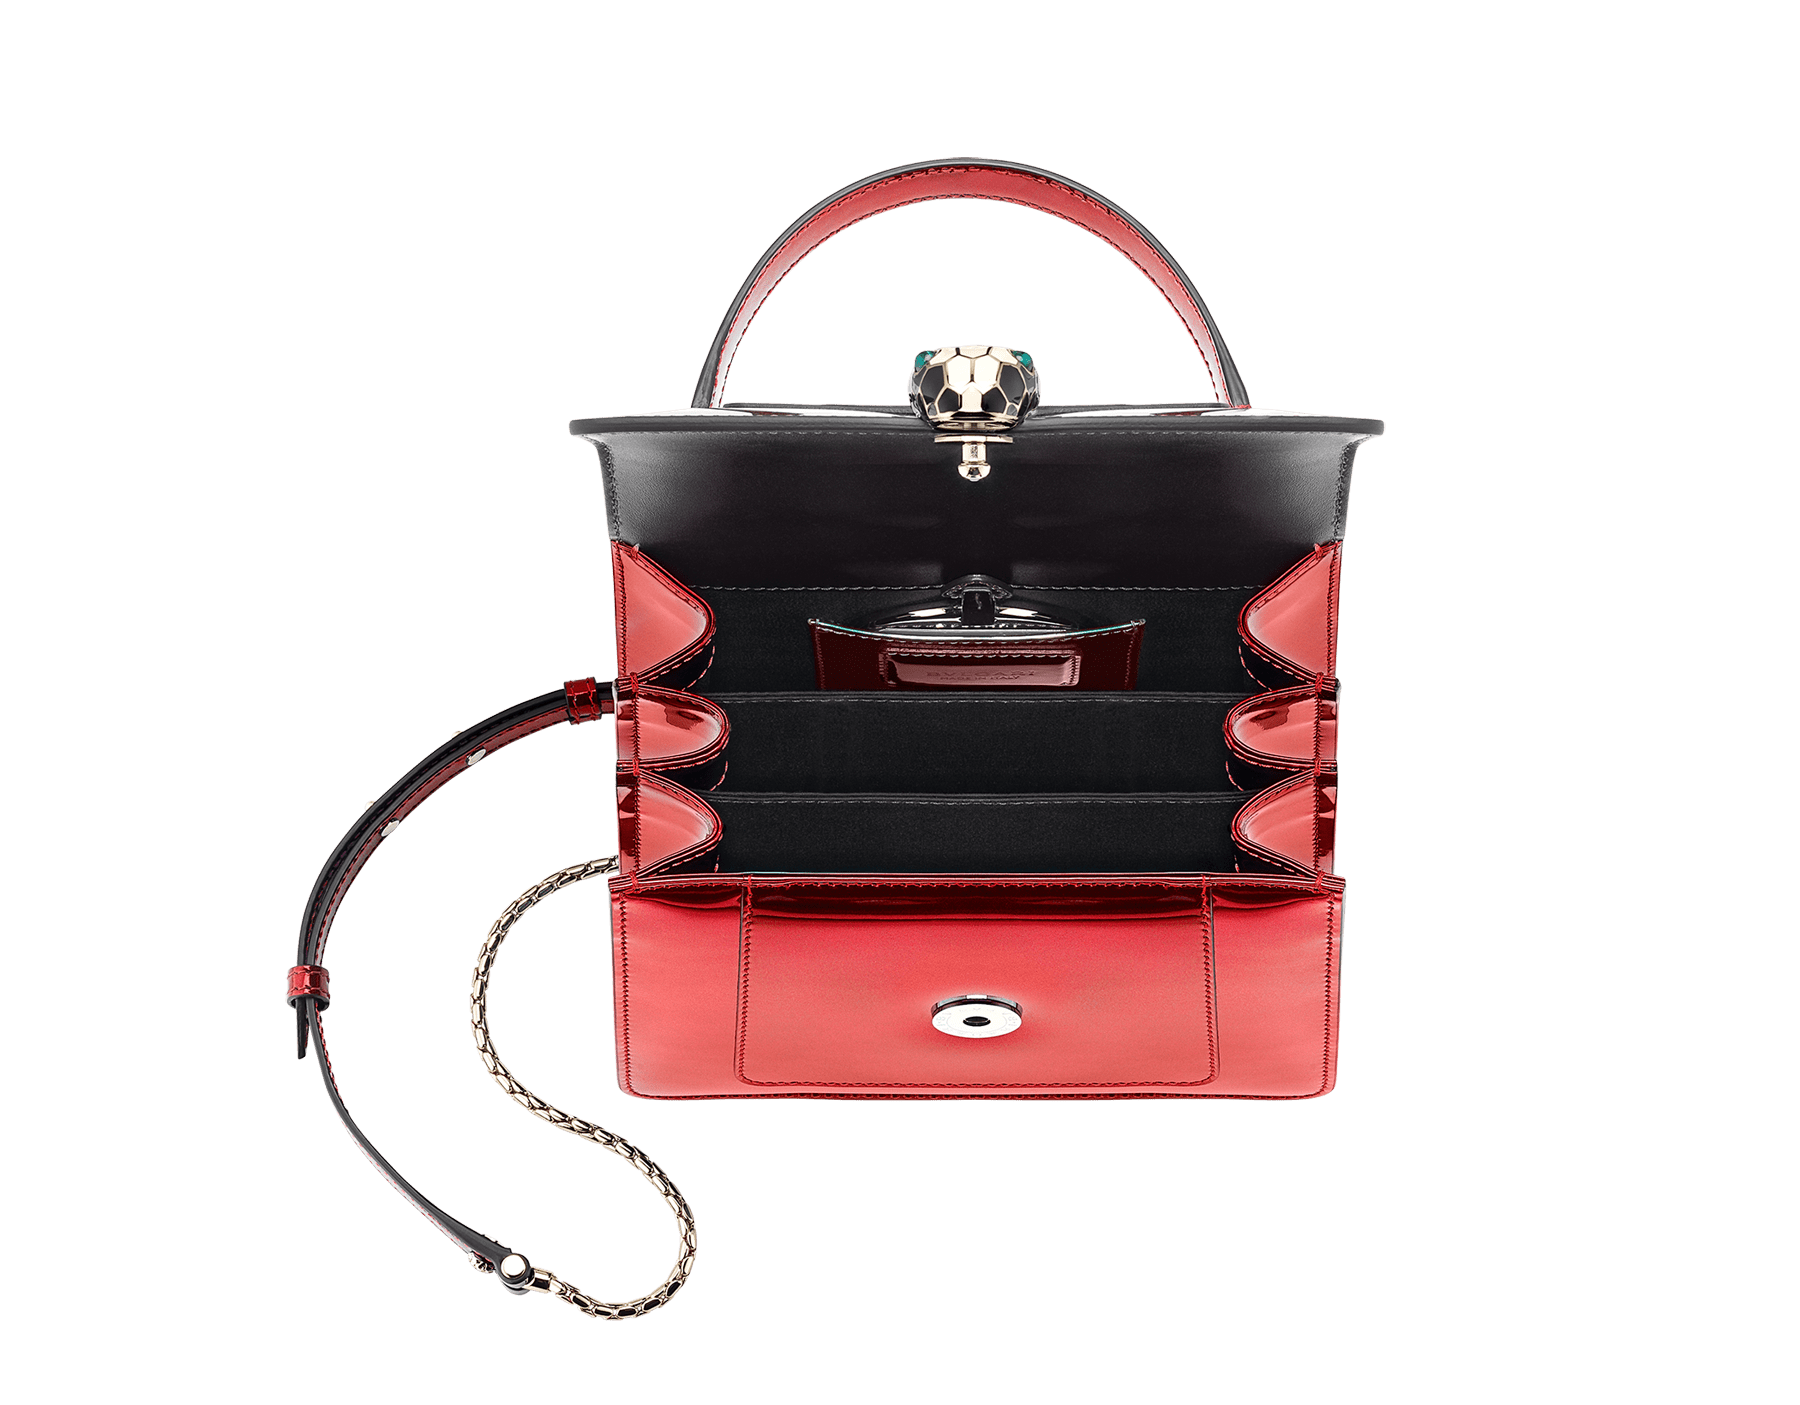 """Serpenti Forever"" crossbody bag in roman garnet brushed metallic calf leather. Iconic snakehead closure in light gold plated brass enriched with black and white enamel and green malachite eyes. 287955 image 4"